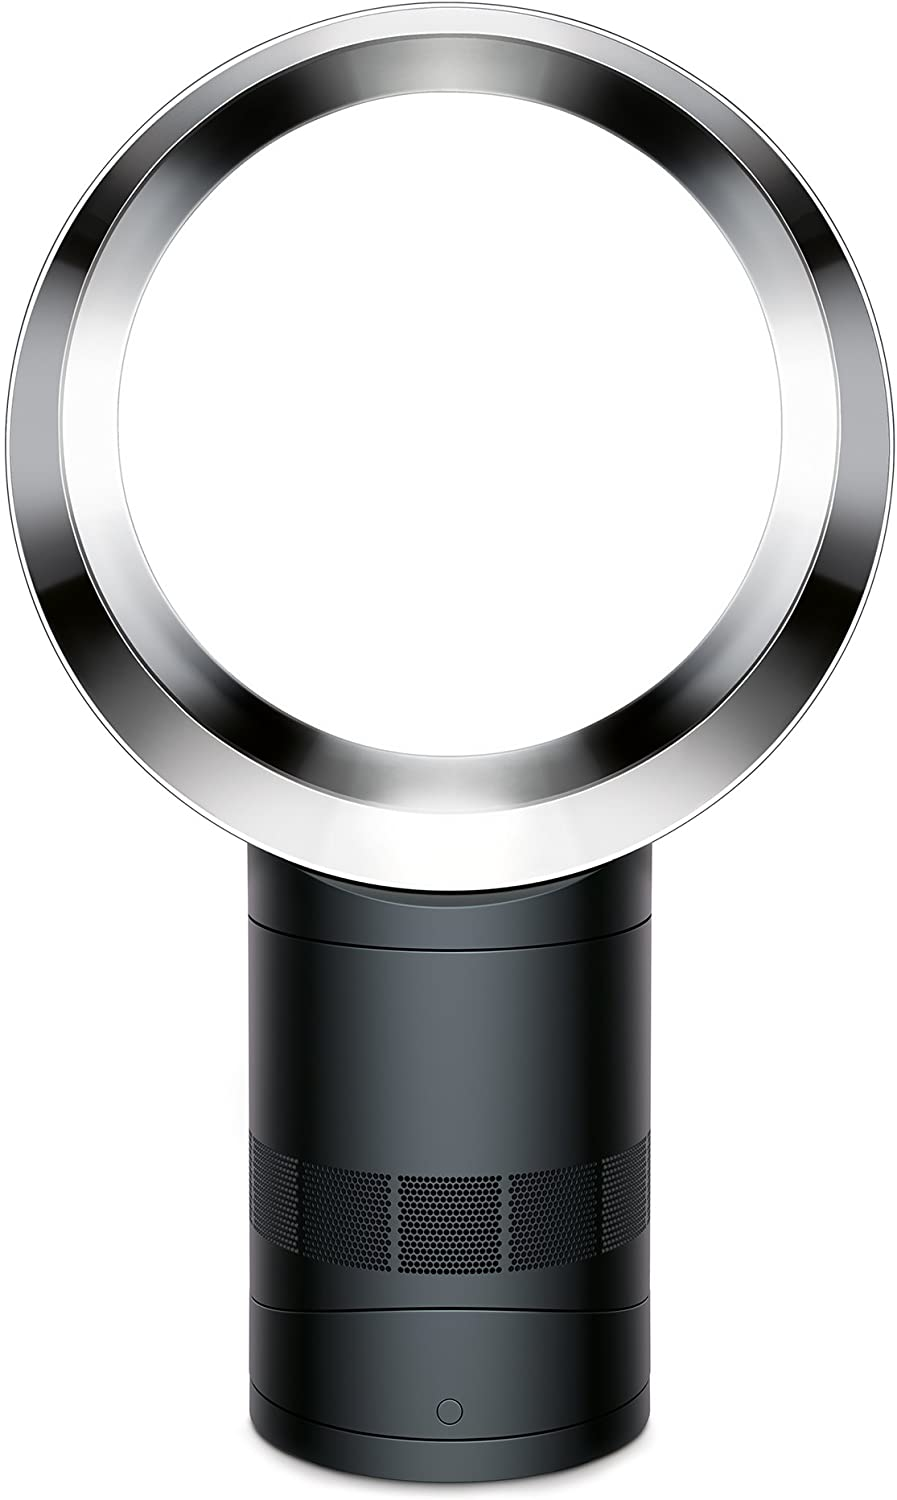 Dyson AM06 BLACK - Am06 - negro - ventilador: Amazon.es: Hogar